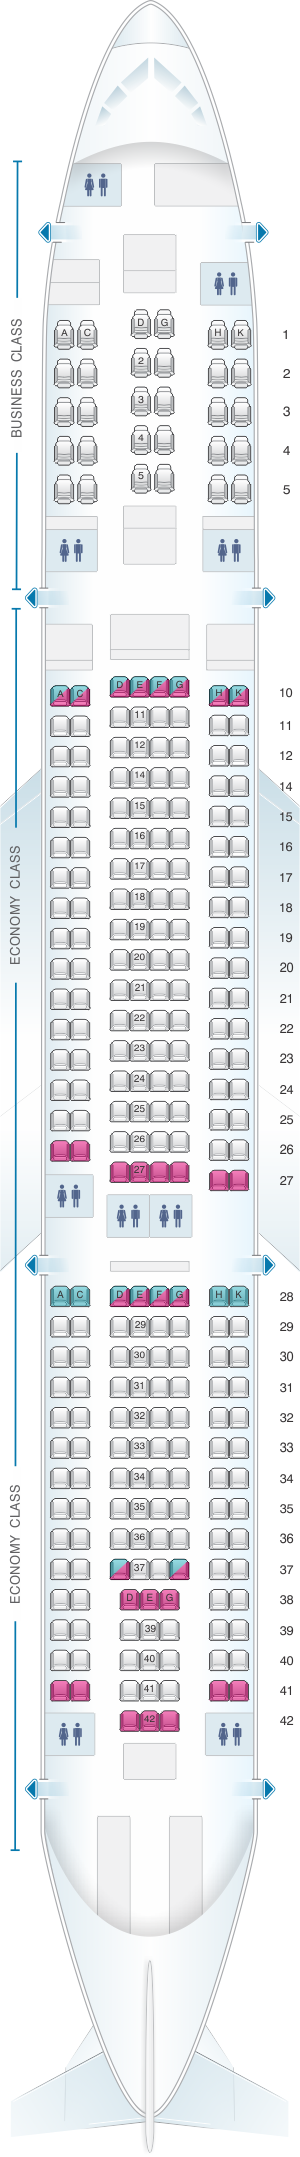 Seat map for Asiana Airlines Airbus A330 300 275PAX